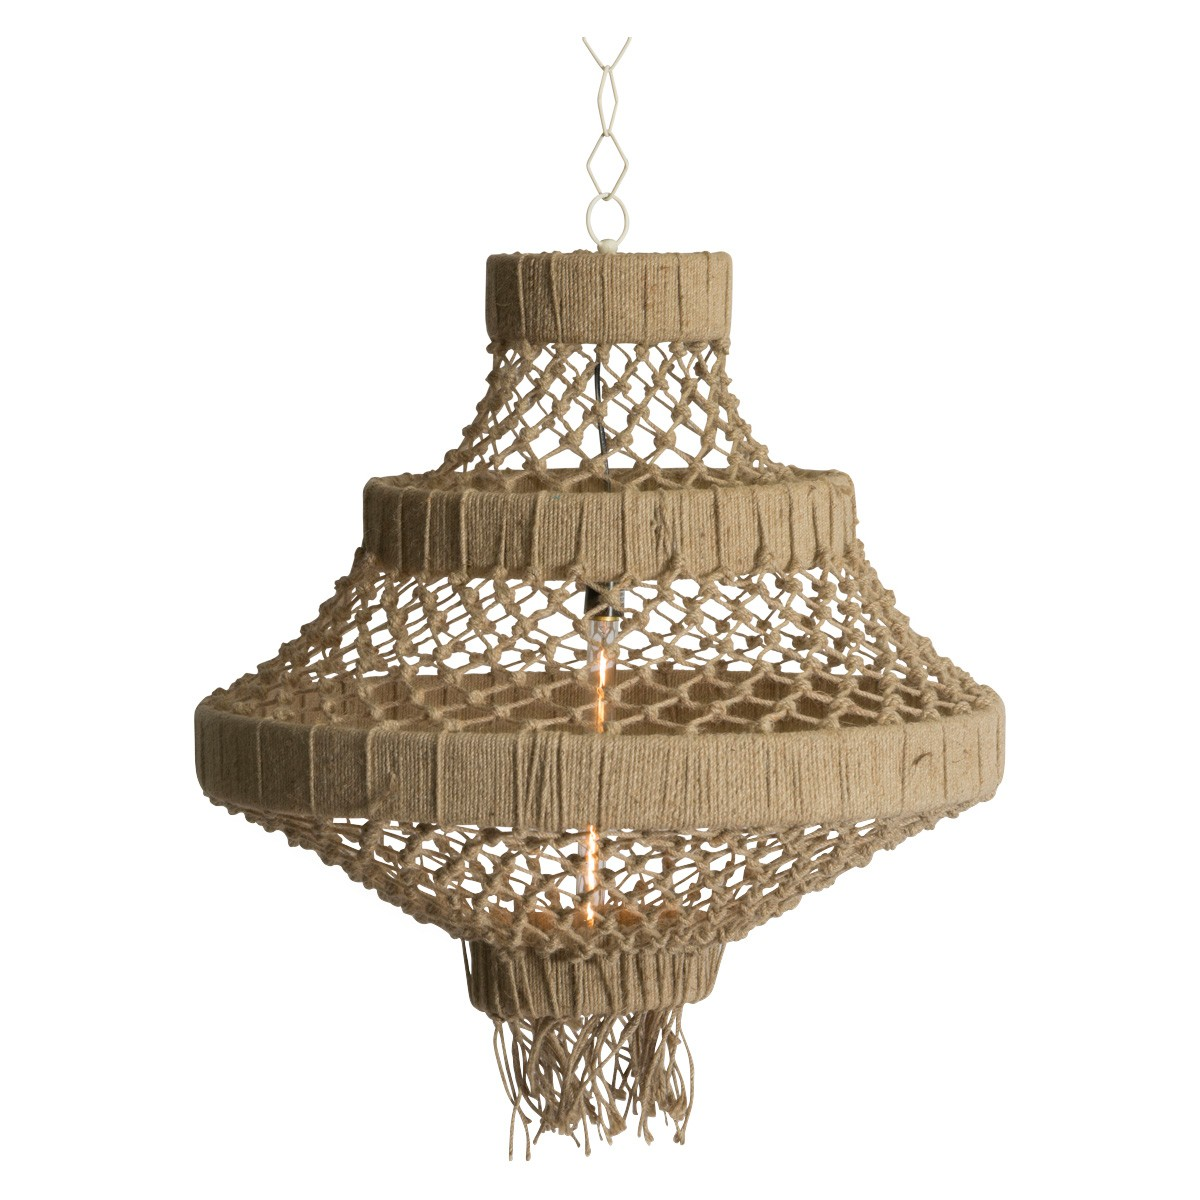 Alta Knotted Jute Pendant Light, Large